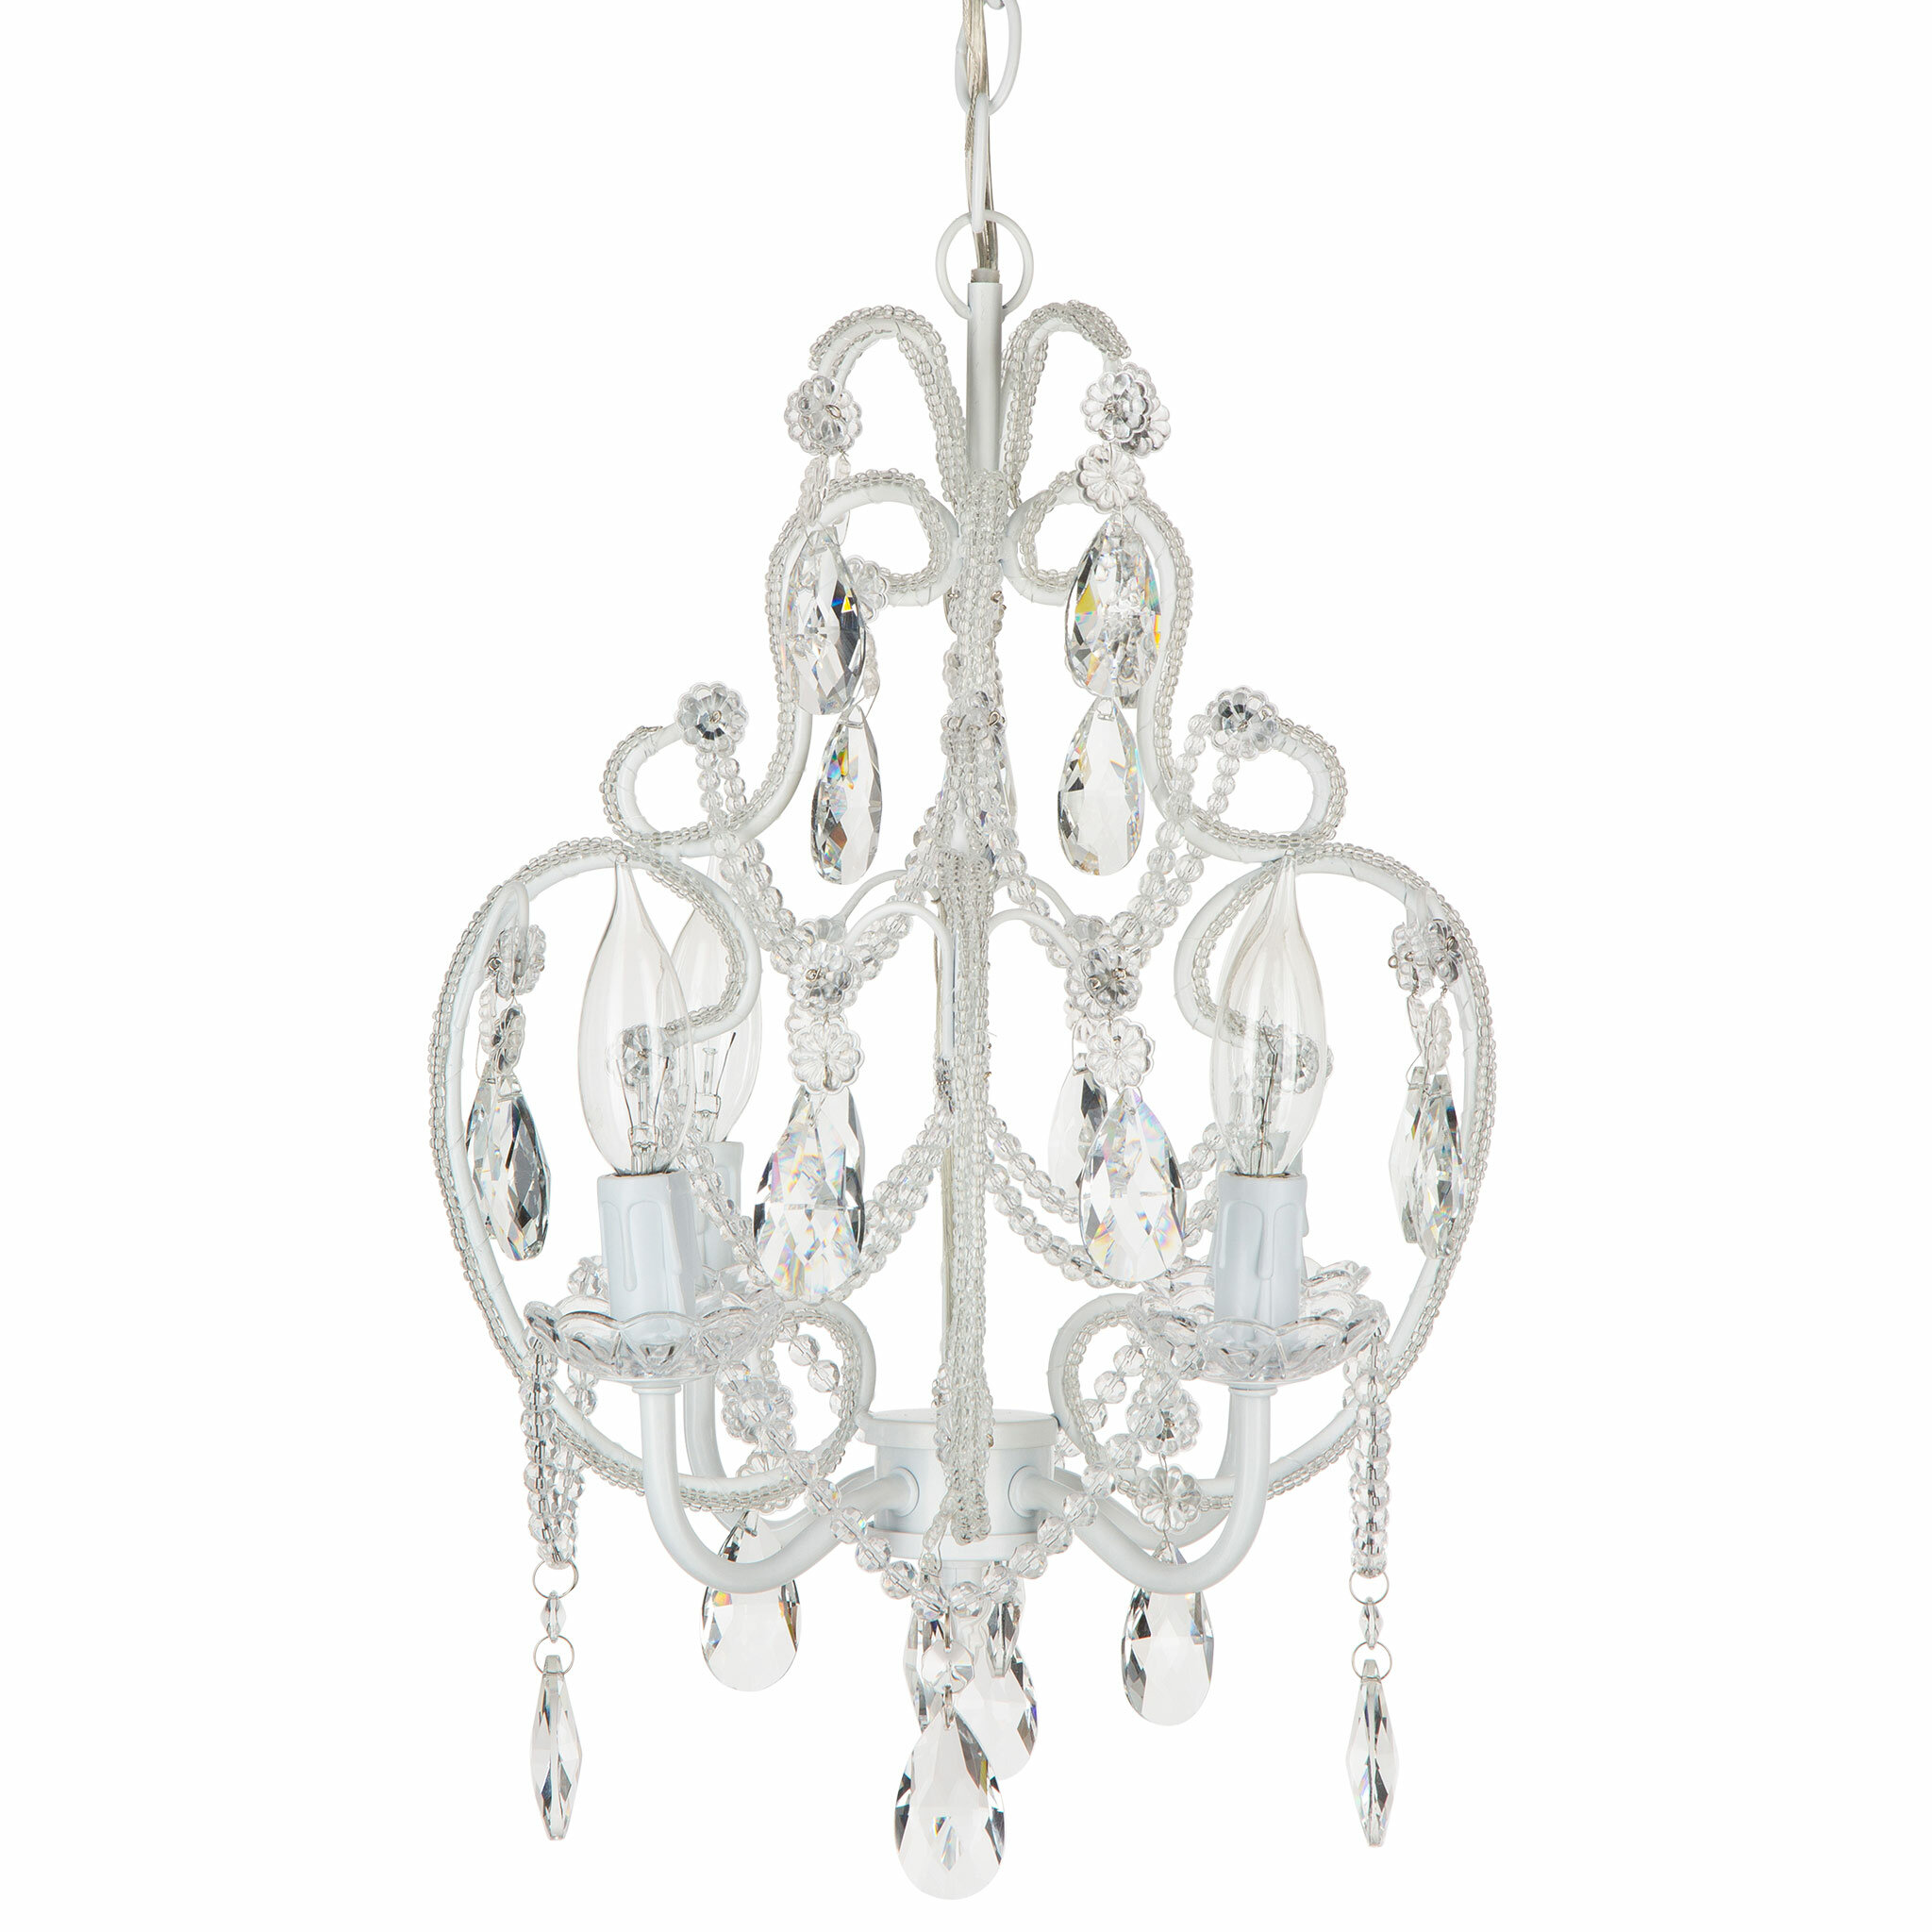 House of Hampton Alida 4 Light Crystal Chandelier with Chain